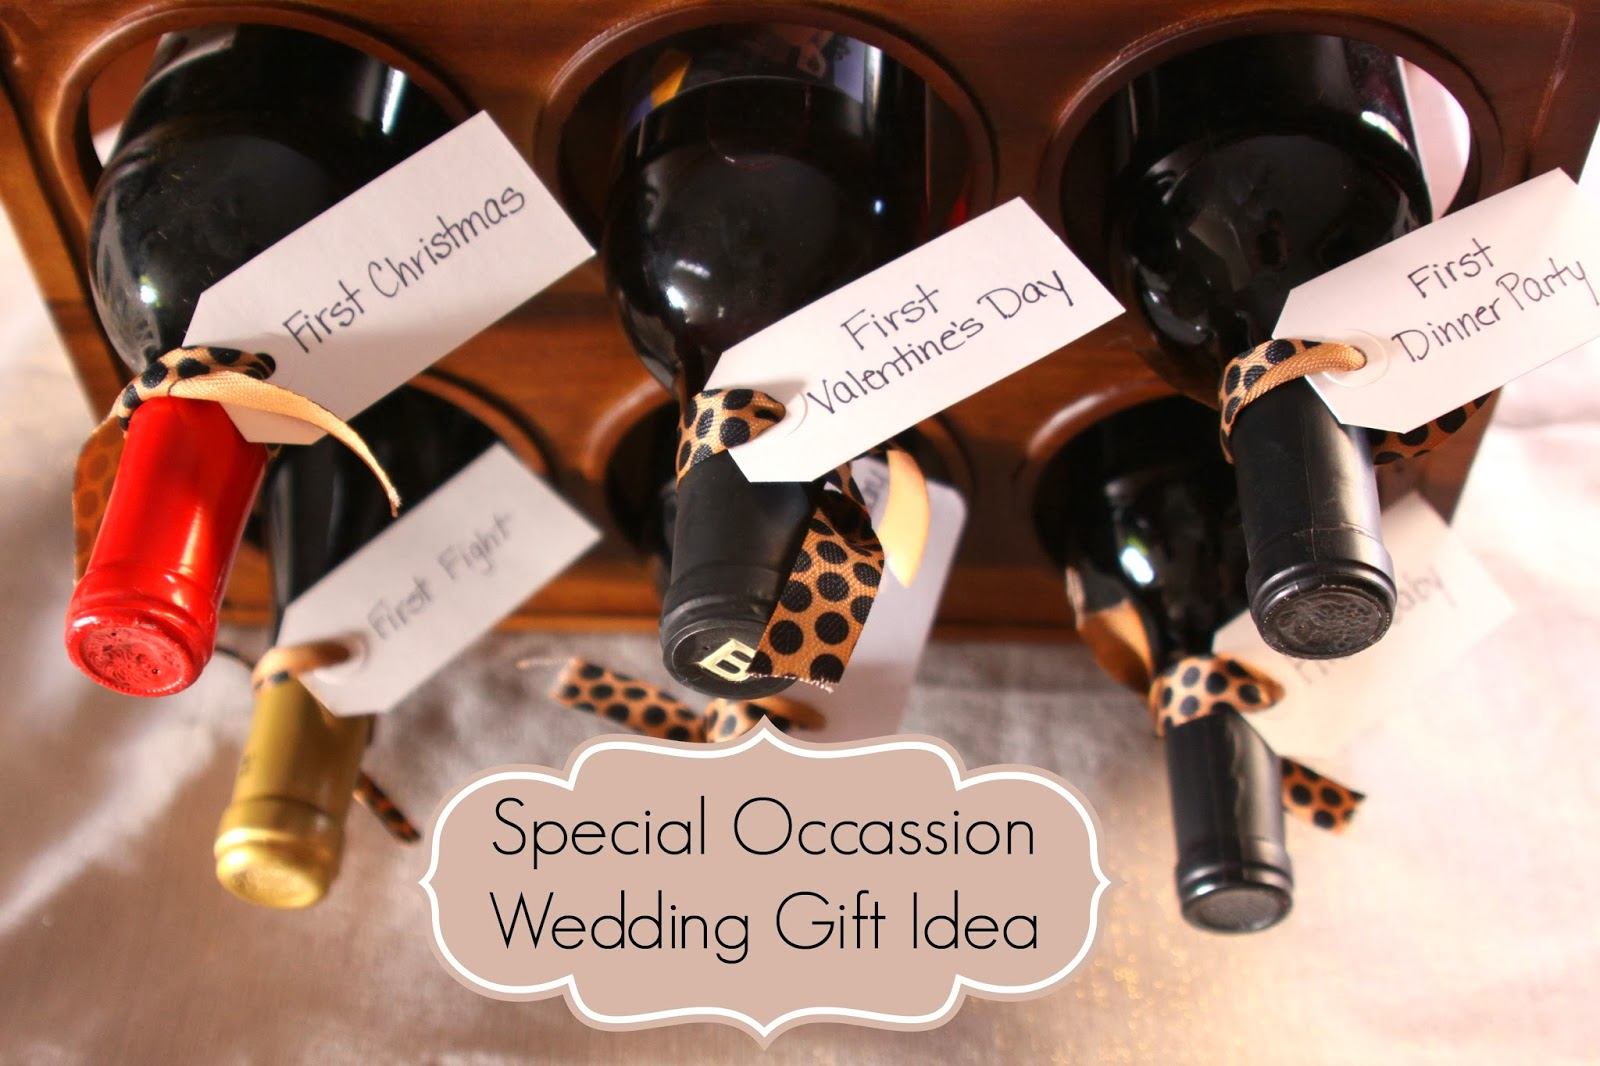 Perfect Wedding Gift For Sister: Thoughtful Wedding Gifts For Sister